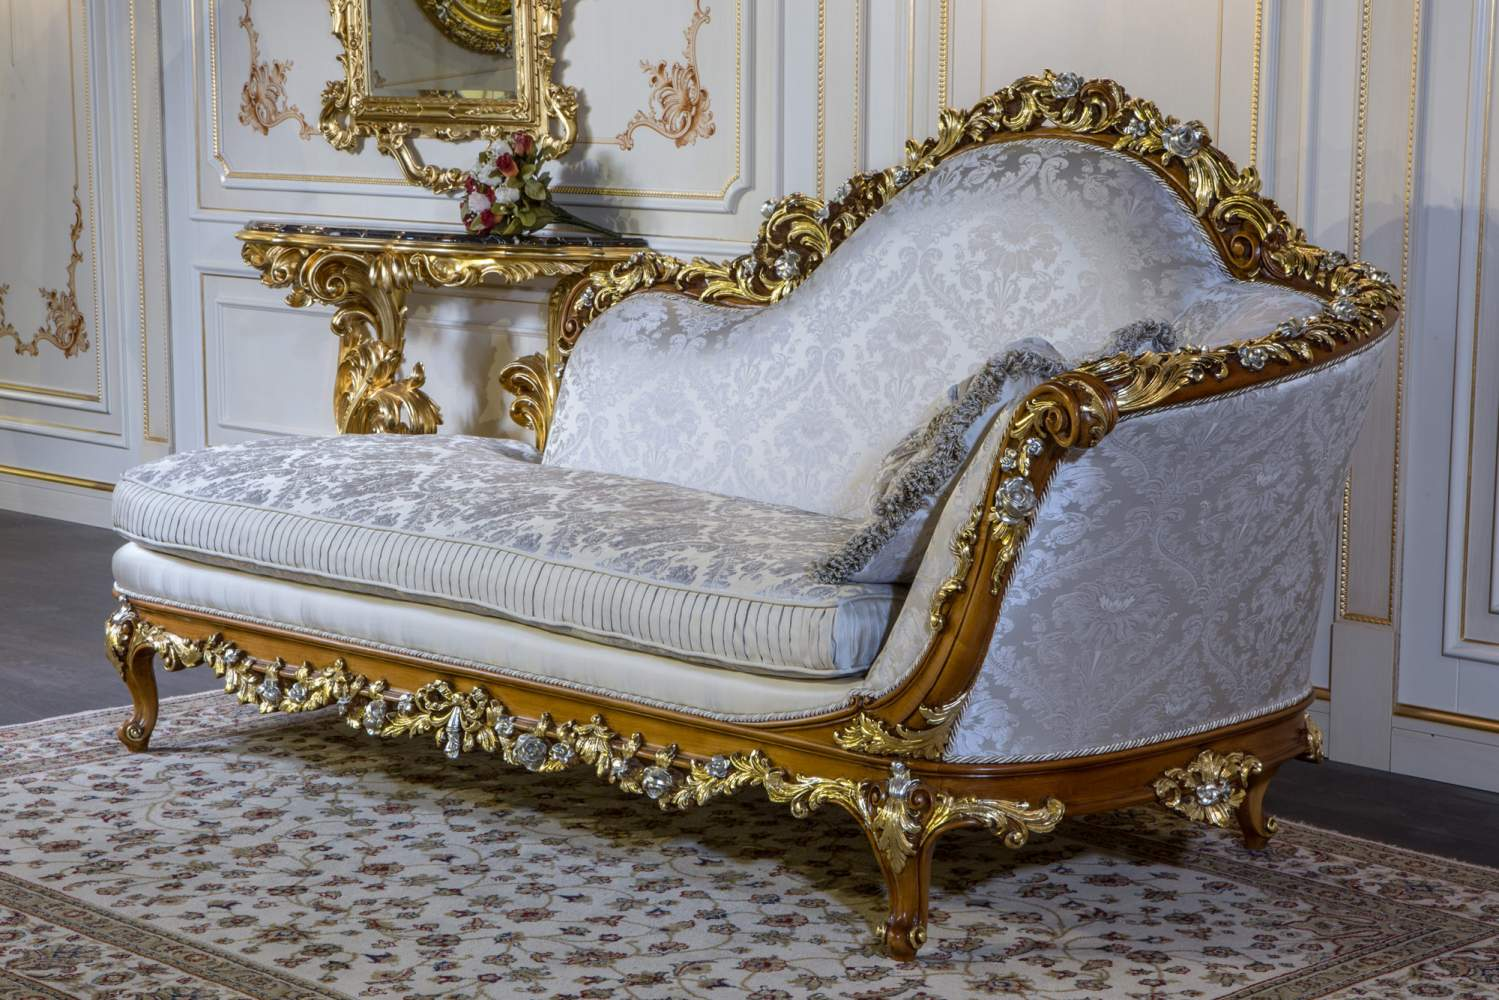 A classic couch in baroque style